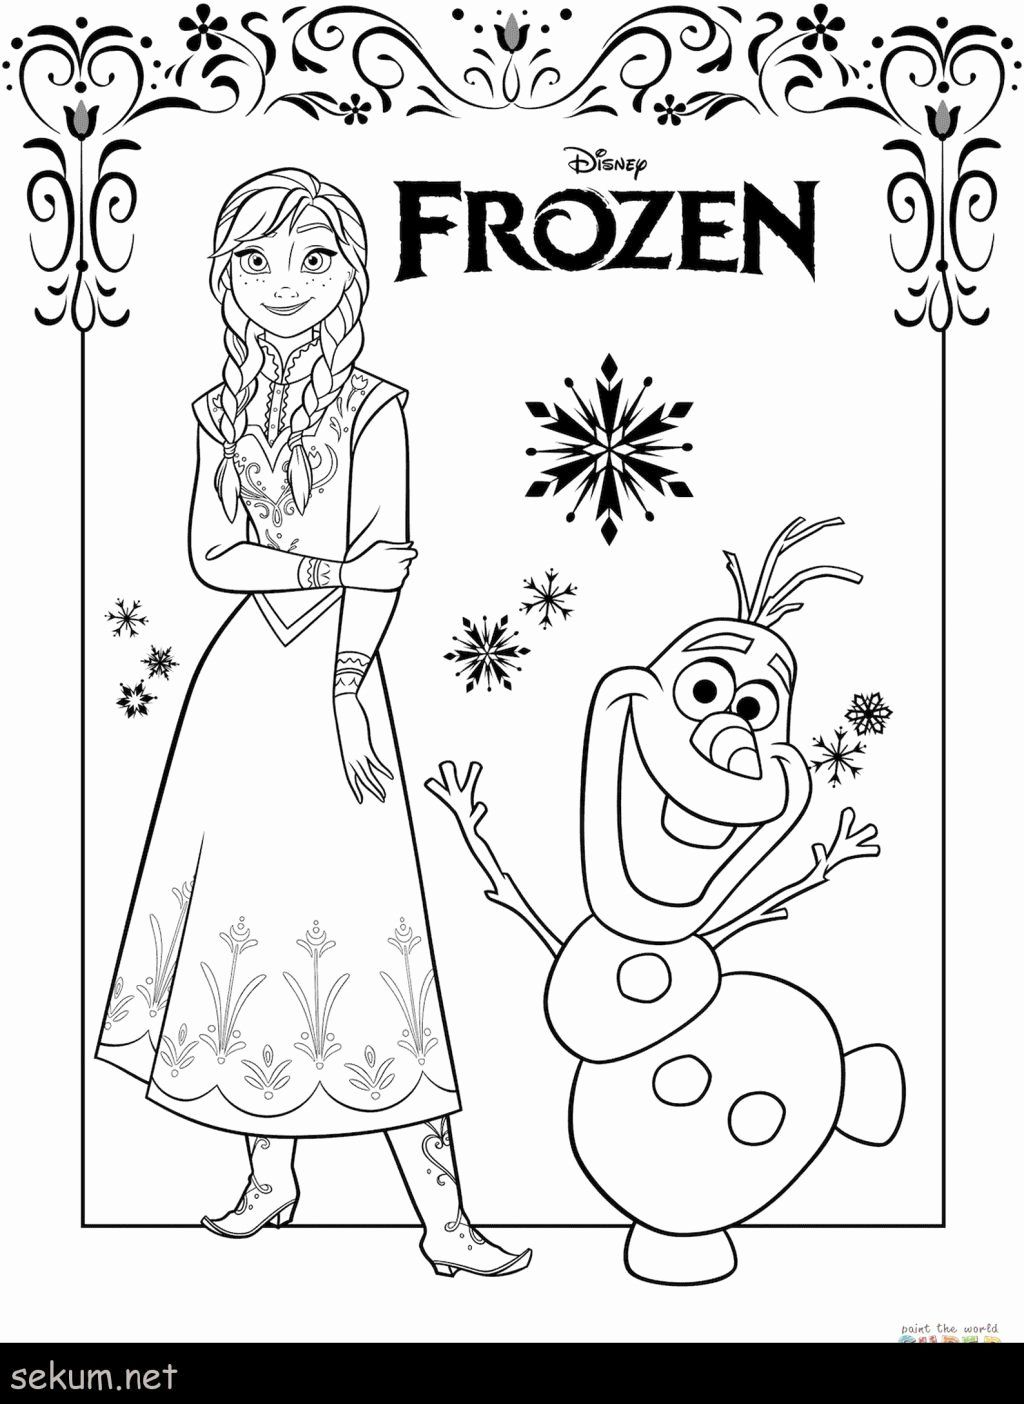 Free Frozen Coloring Sheets Fresh Coloring Arts Frozen Coloring Sheets Pdf Frozen Coloring Elsa Coloring Pages Frozen Coloring Frozen Coloring Pages